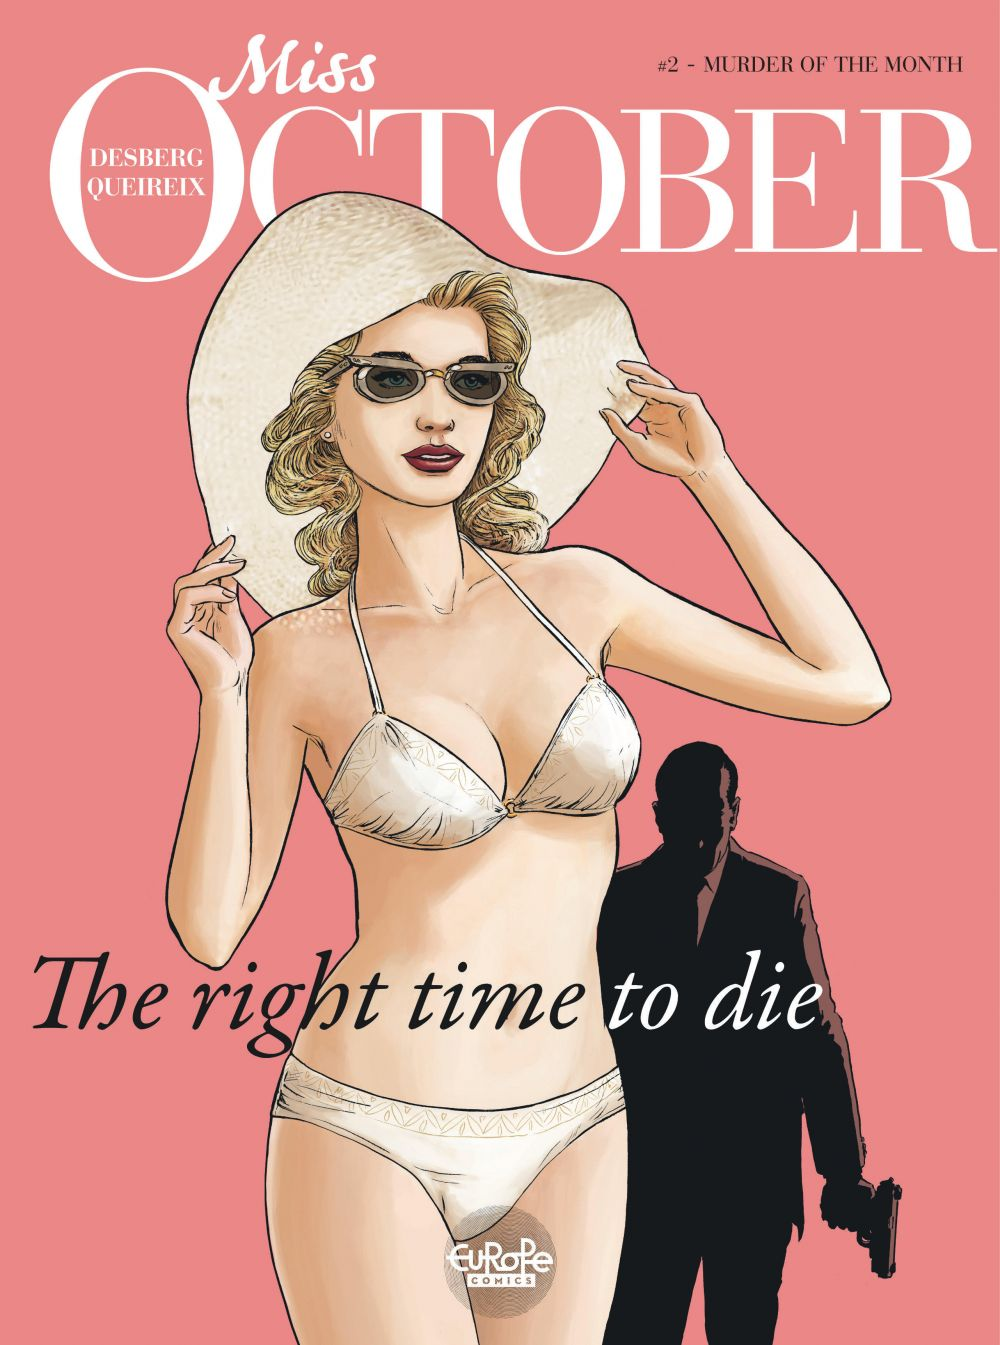 Miss October 2. Murder of the Month